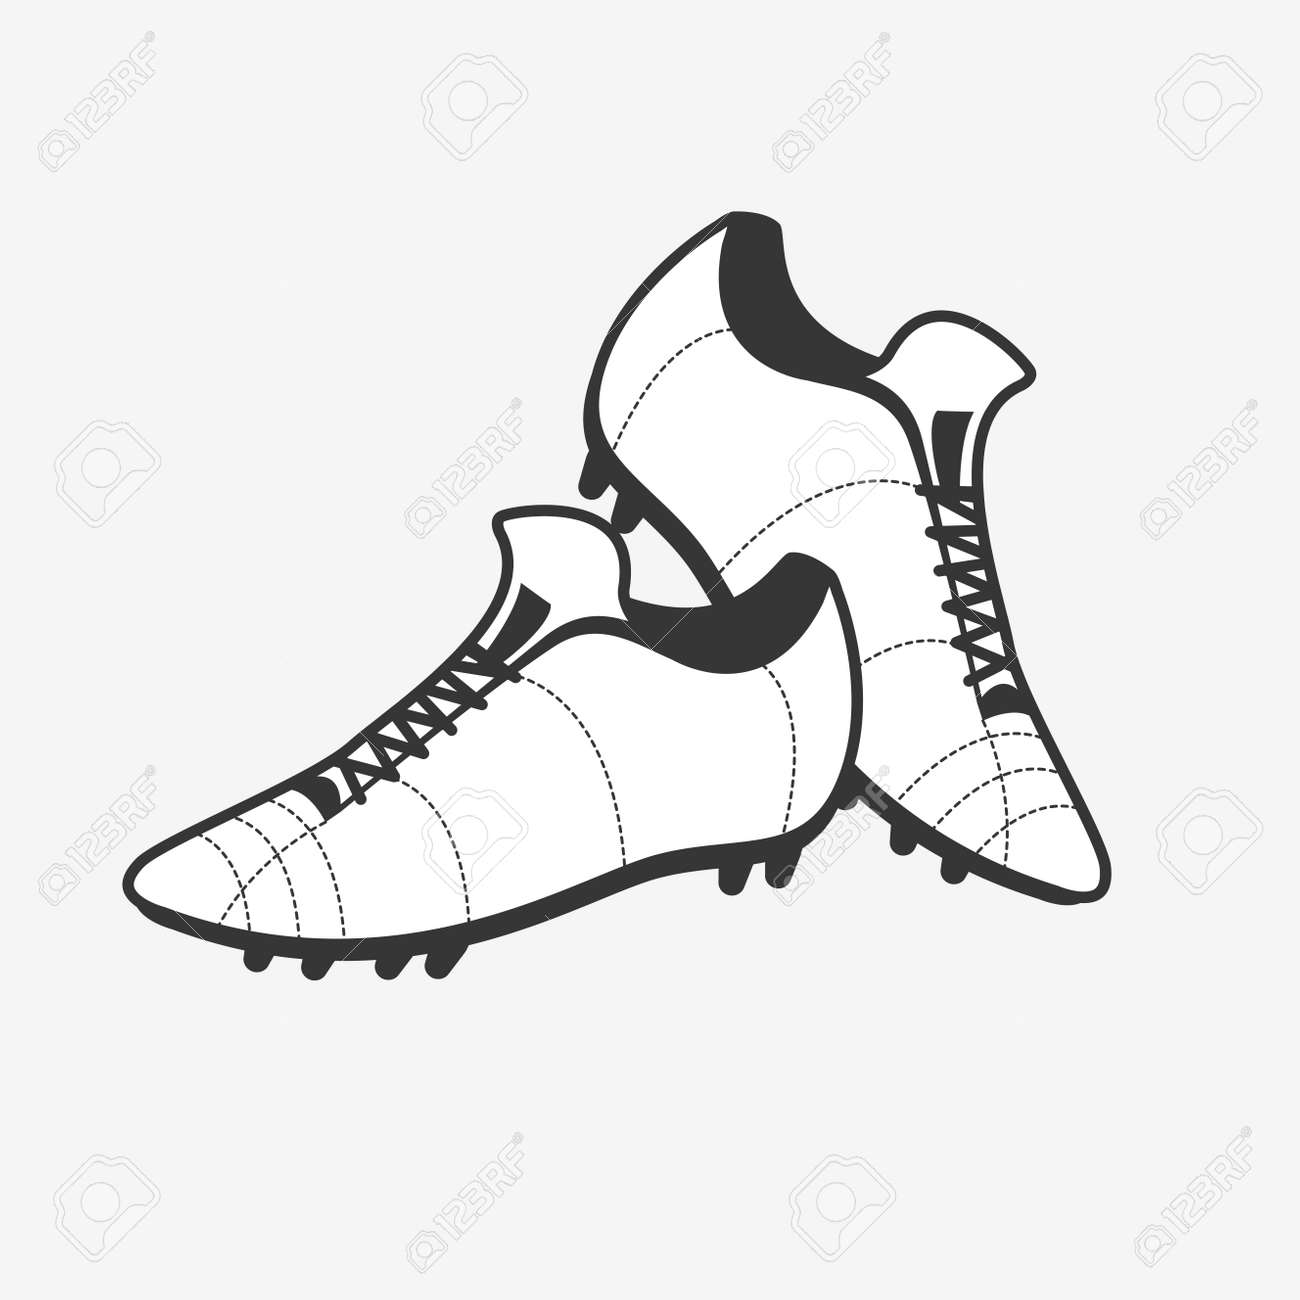 Soccer Shoes. Football Boots Icon